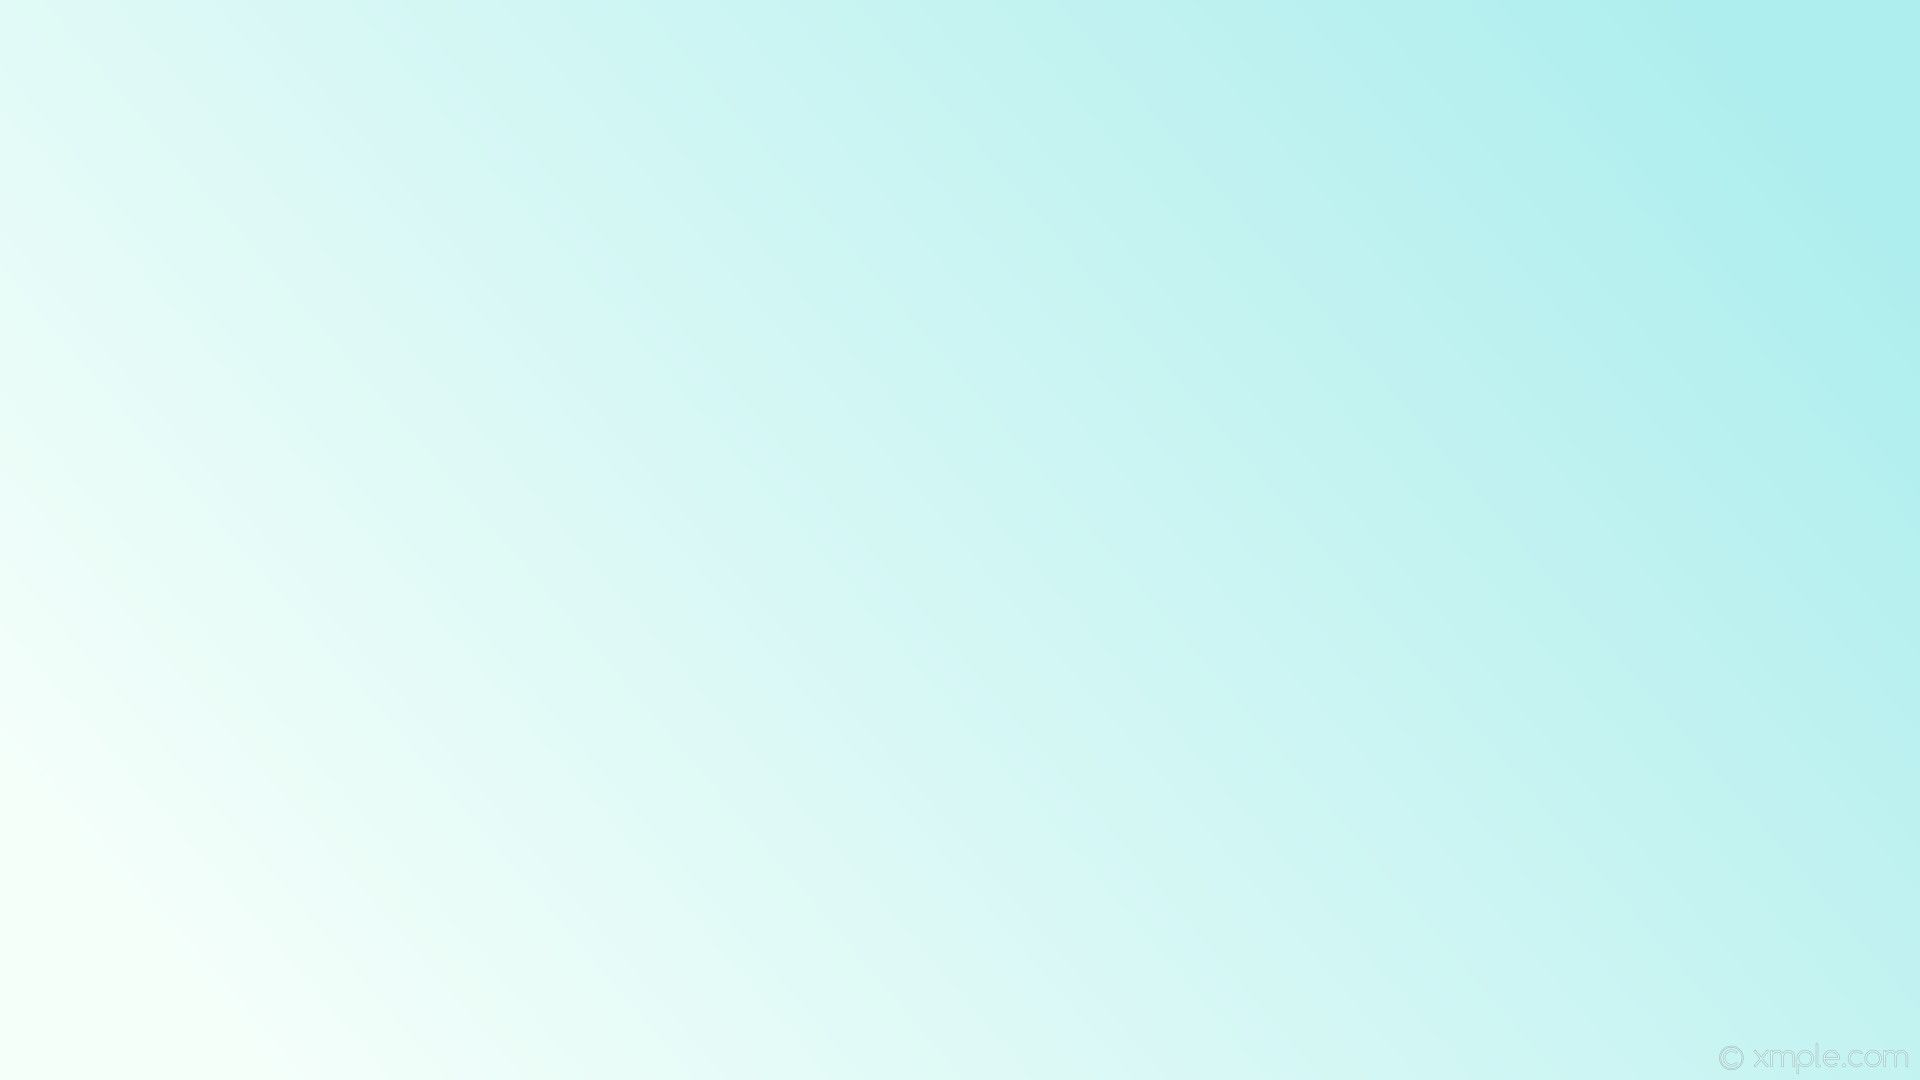 Pastel Blue Wallpapers - Top Free Pastel Blue Backgrounds ...